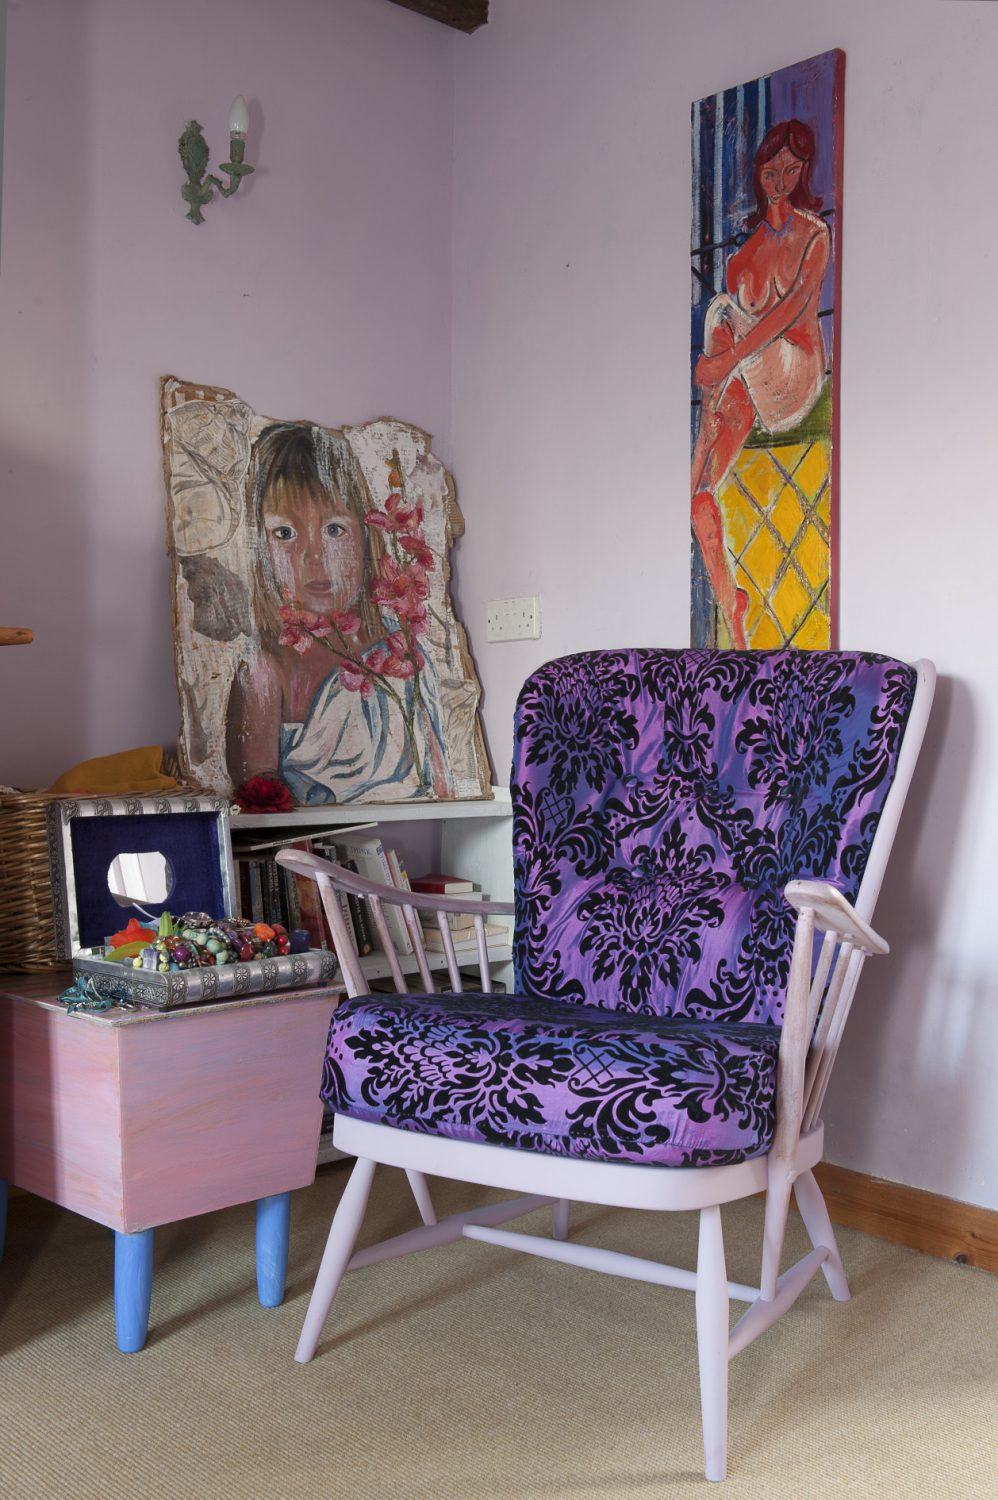 In one corner of Oeda's bedroom, a wooden armchair is upholstered in striking mauve and black. On the walls are more pictures by her daughters and a nude by Kim Langford